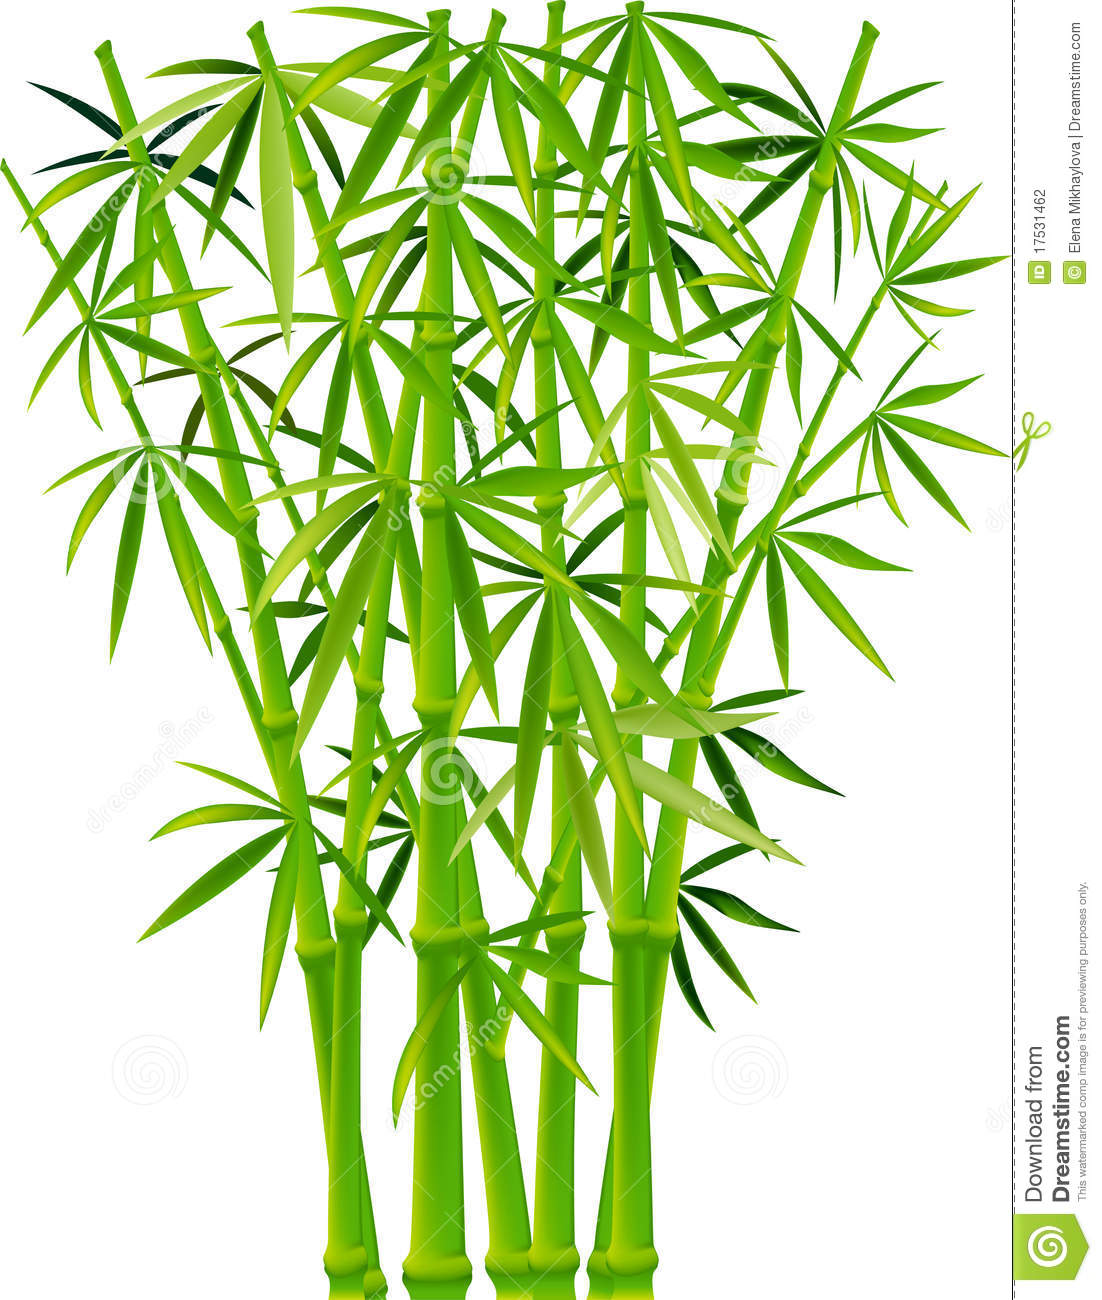 bamboo stock photography image 17531462 clip art sounds free downloads microsoft clipart sound bytes